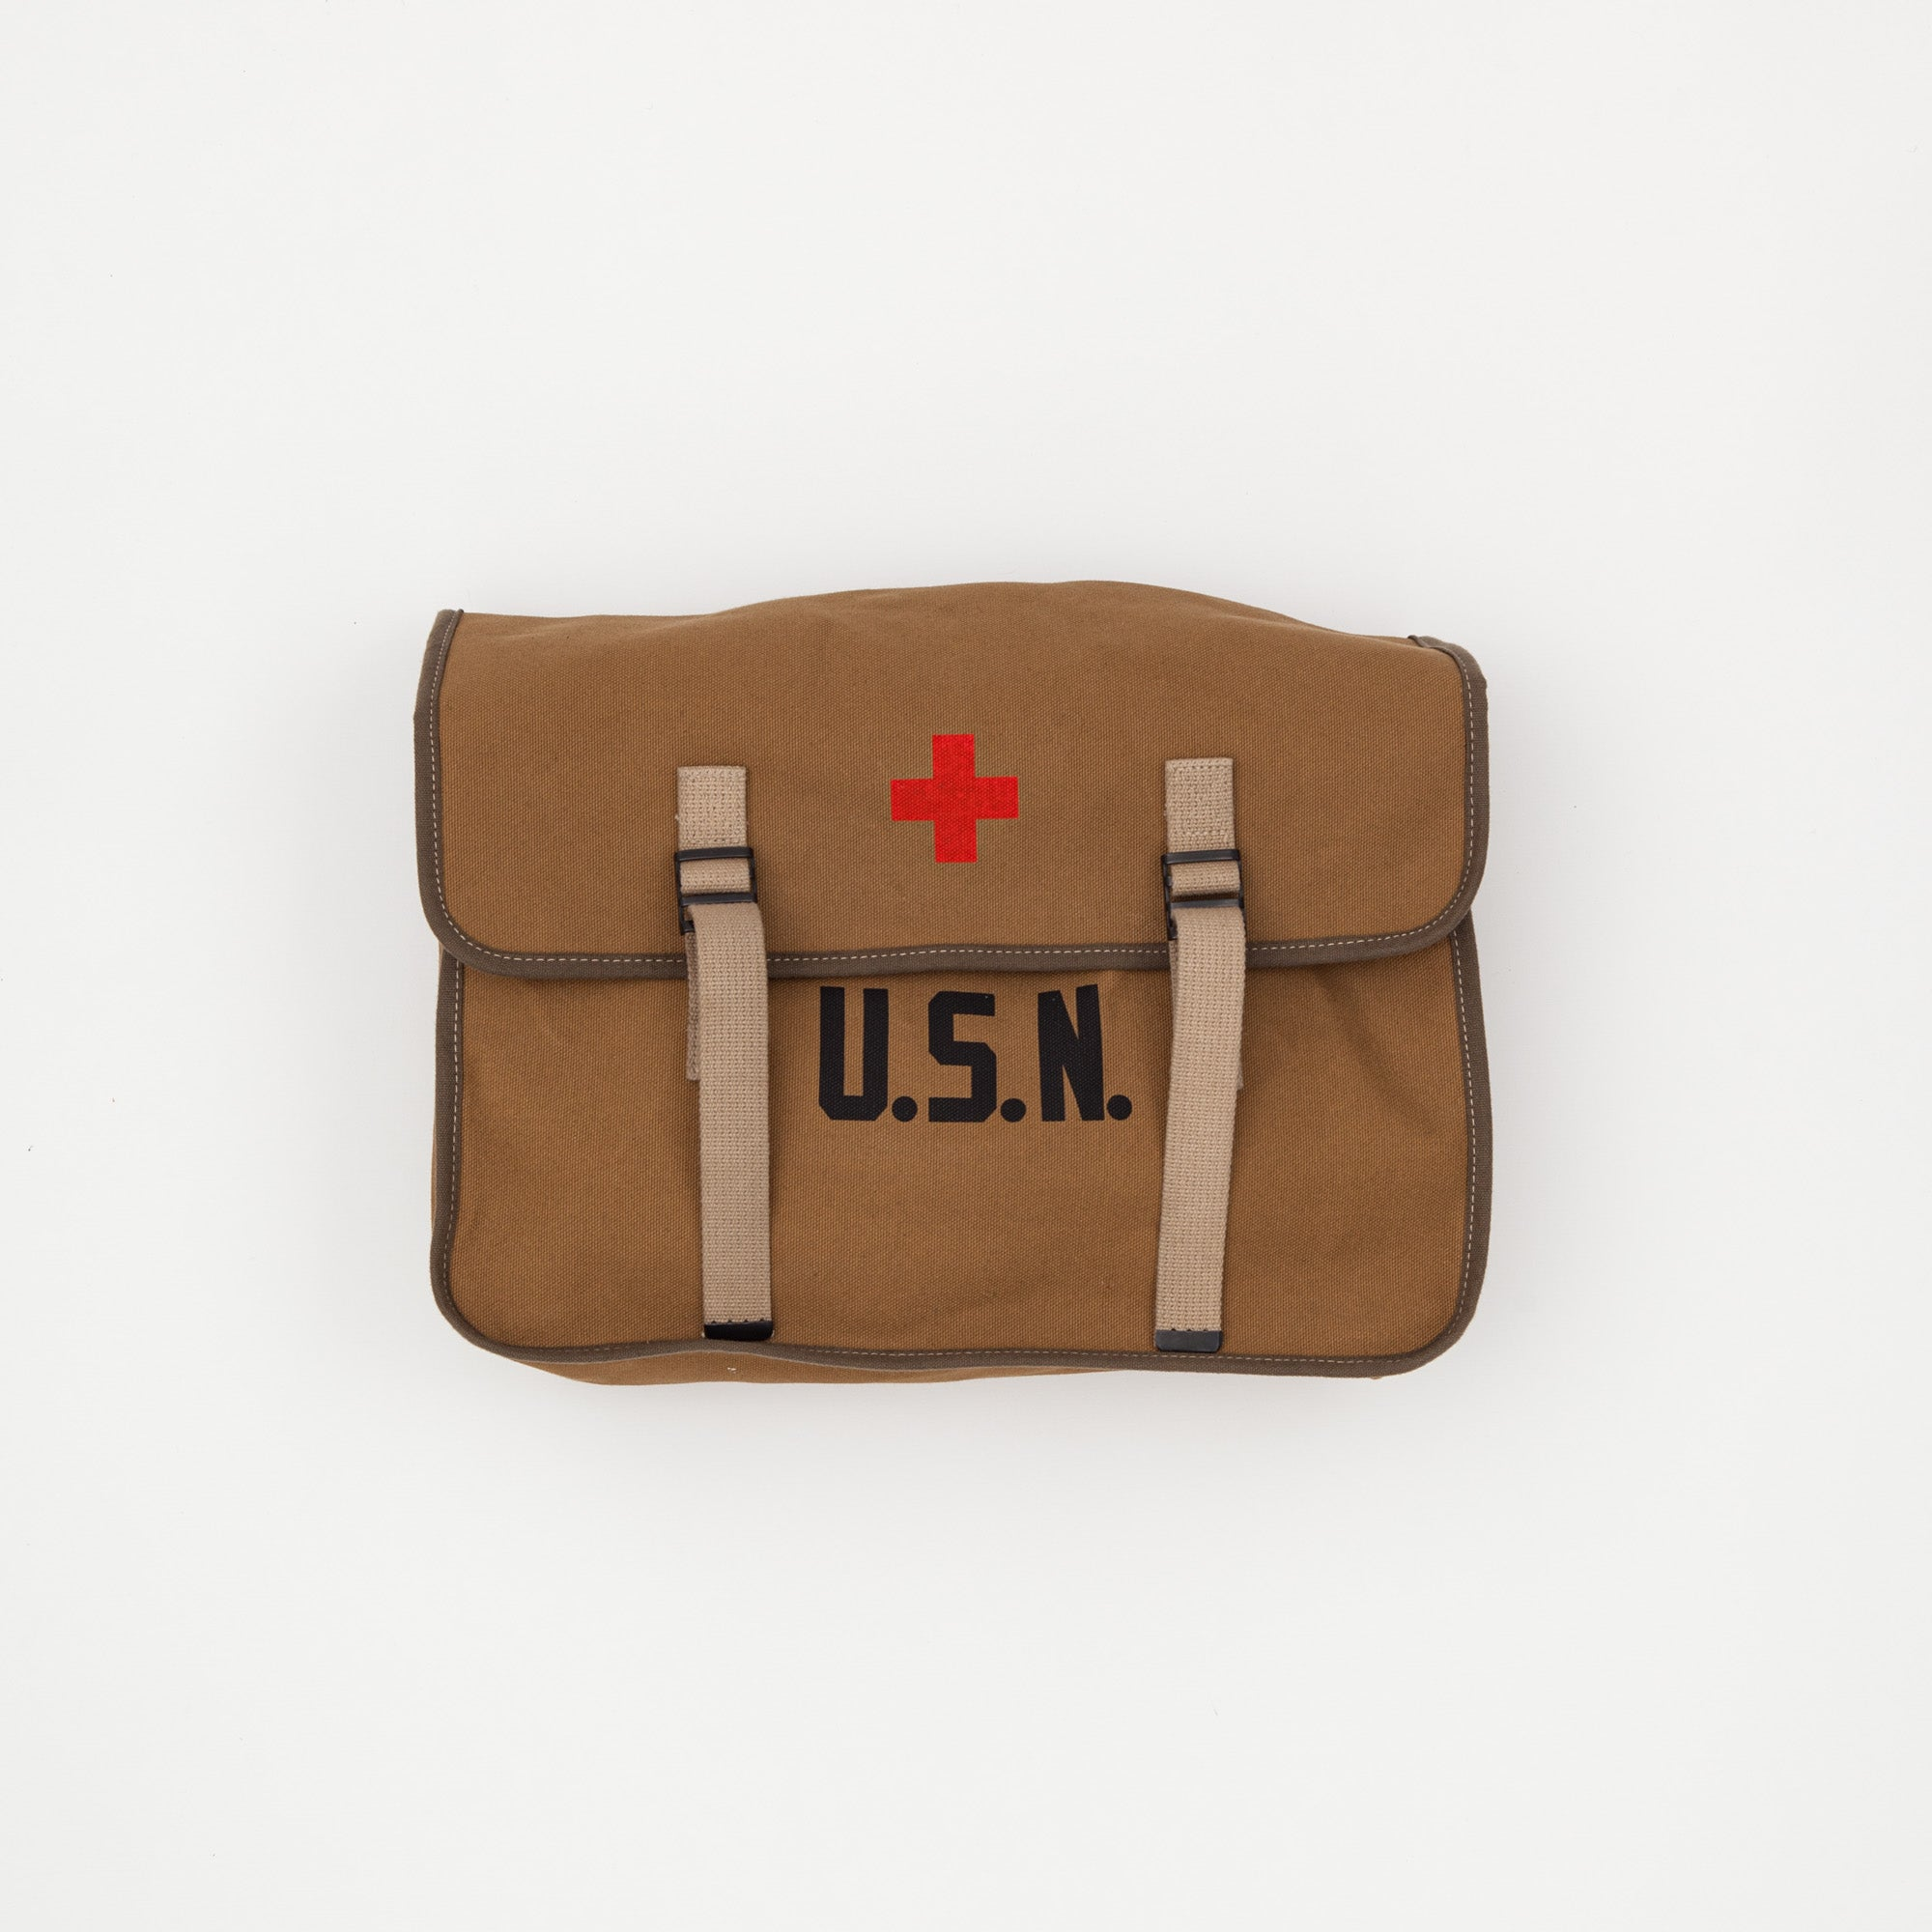 The Real McCoy's U.S.N Bag